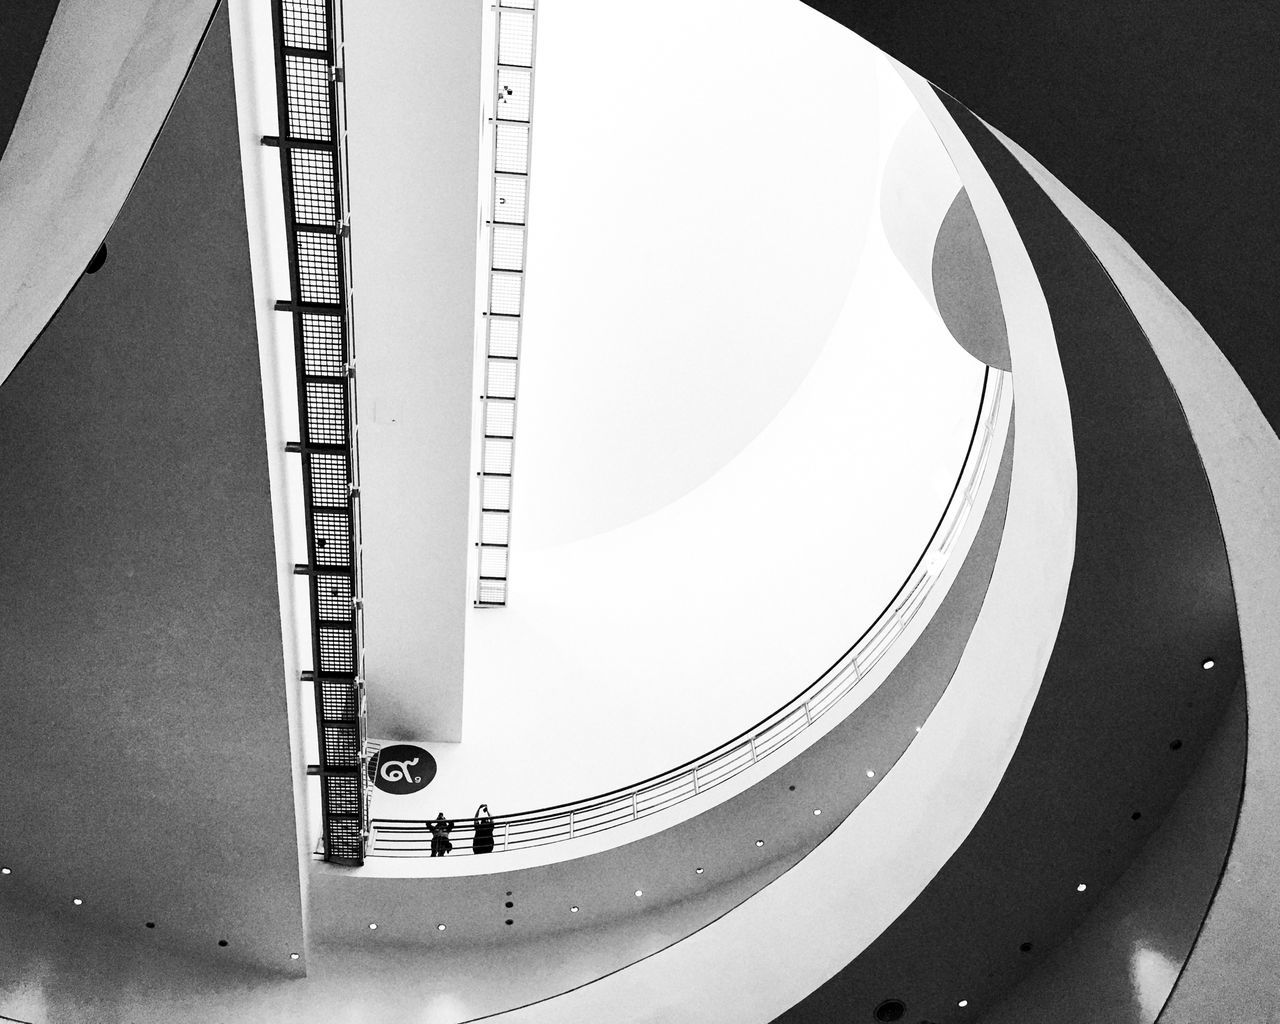 Architecture Bangkok Arts & Cultural Centre Circle Design Directly Below Geometric Shape Indoors  Modern Spiral Spiral Staircase Spotted Your Design Story